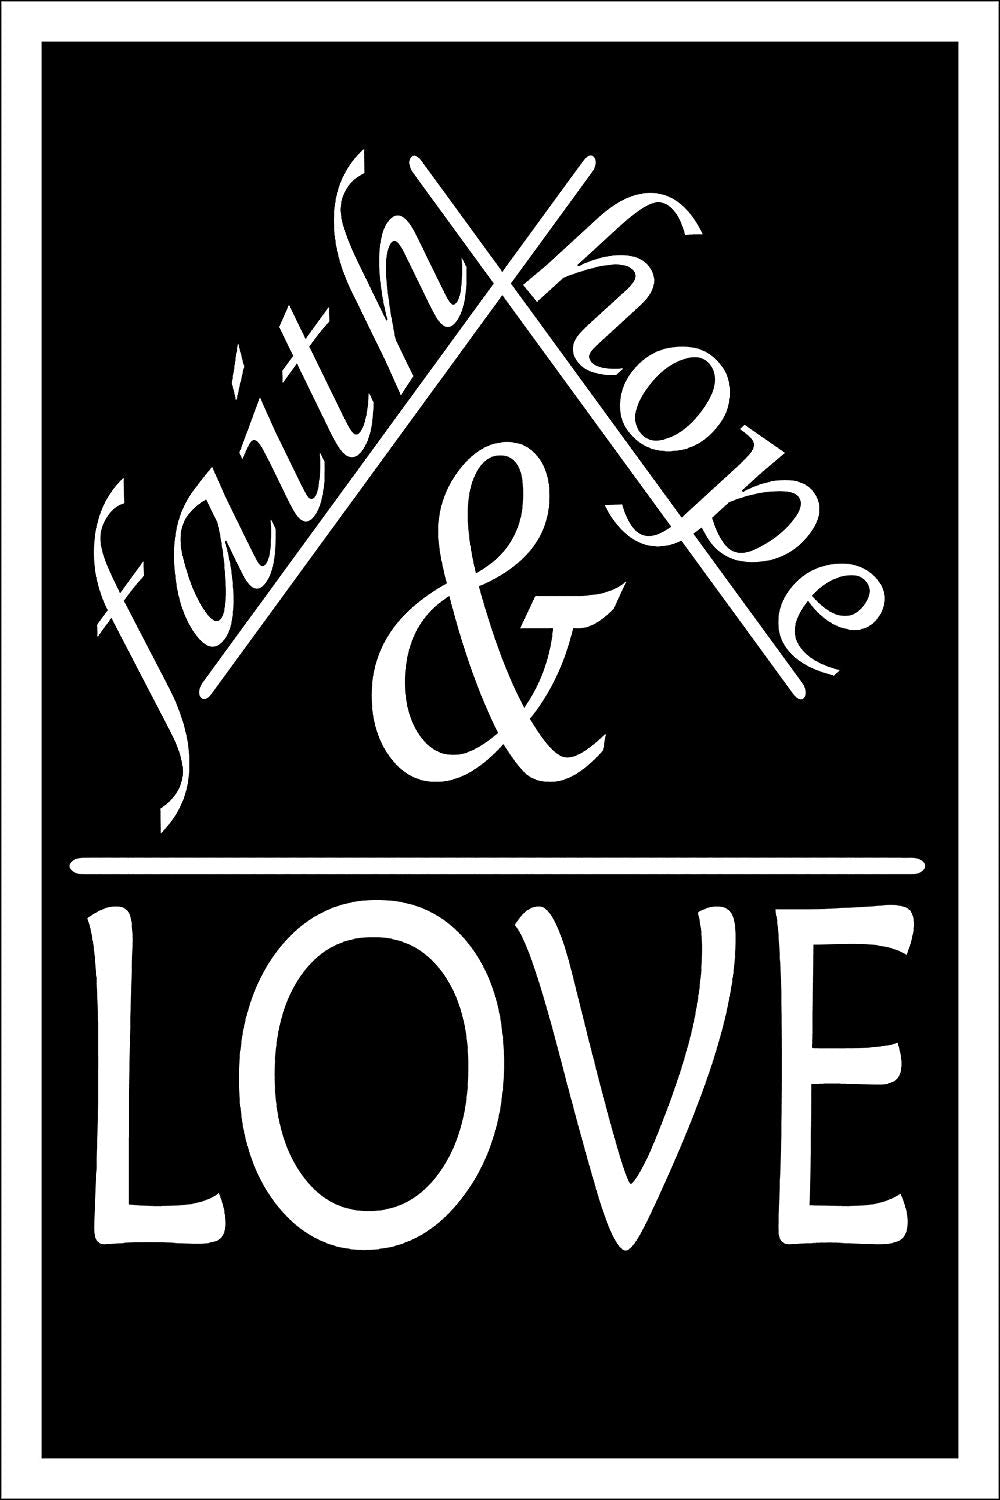 "Spitzy's Faith Hope and Love Religious Motivational Poster (12"" x 18"" Dimensions Include a White .5"" Border)"